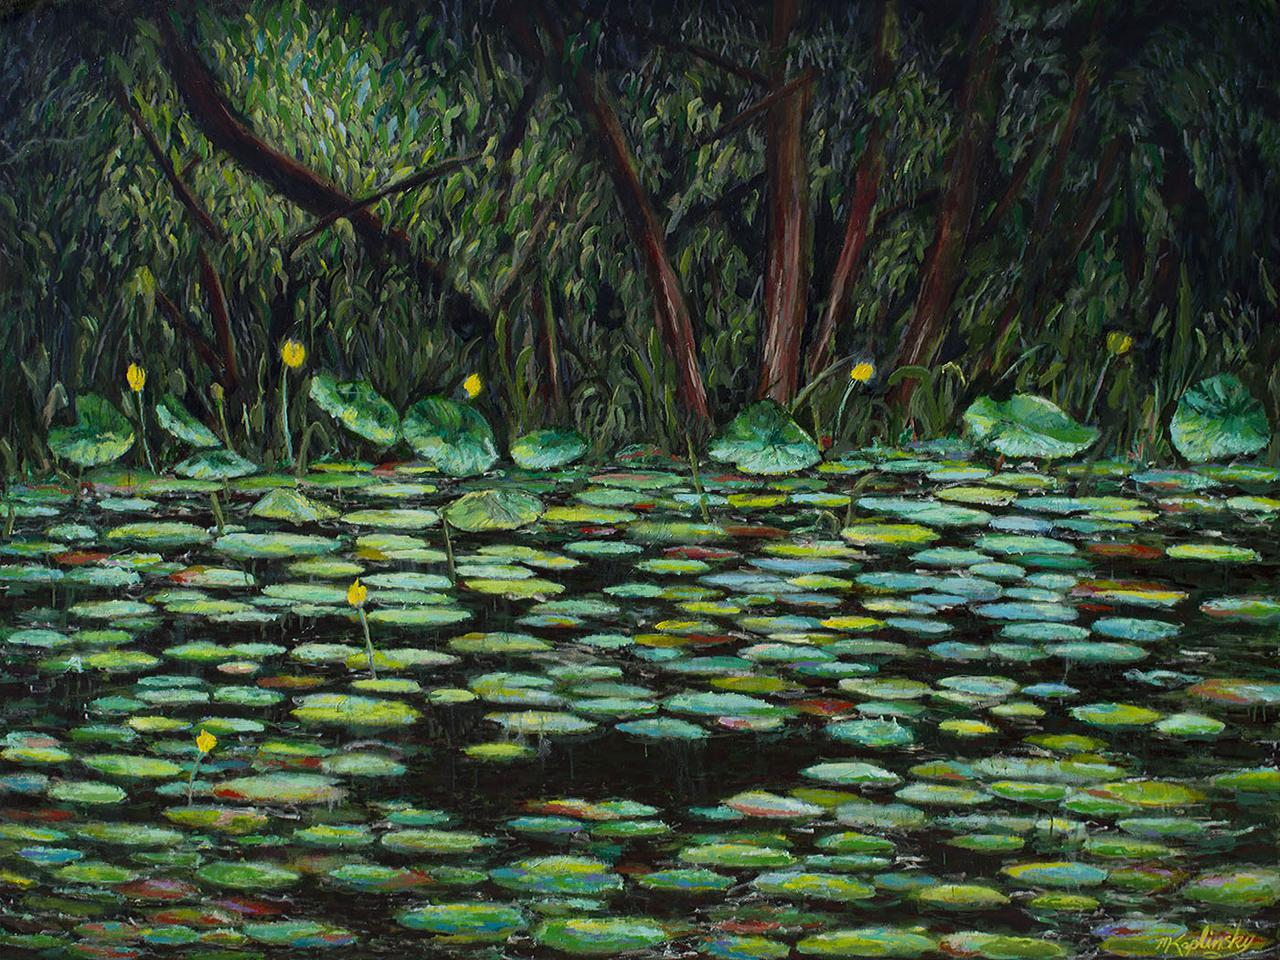 portfolio/Lotus Pond at Dusk - 72x96 Acrylic on canvas by Matt Kaplinsky.jpg